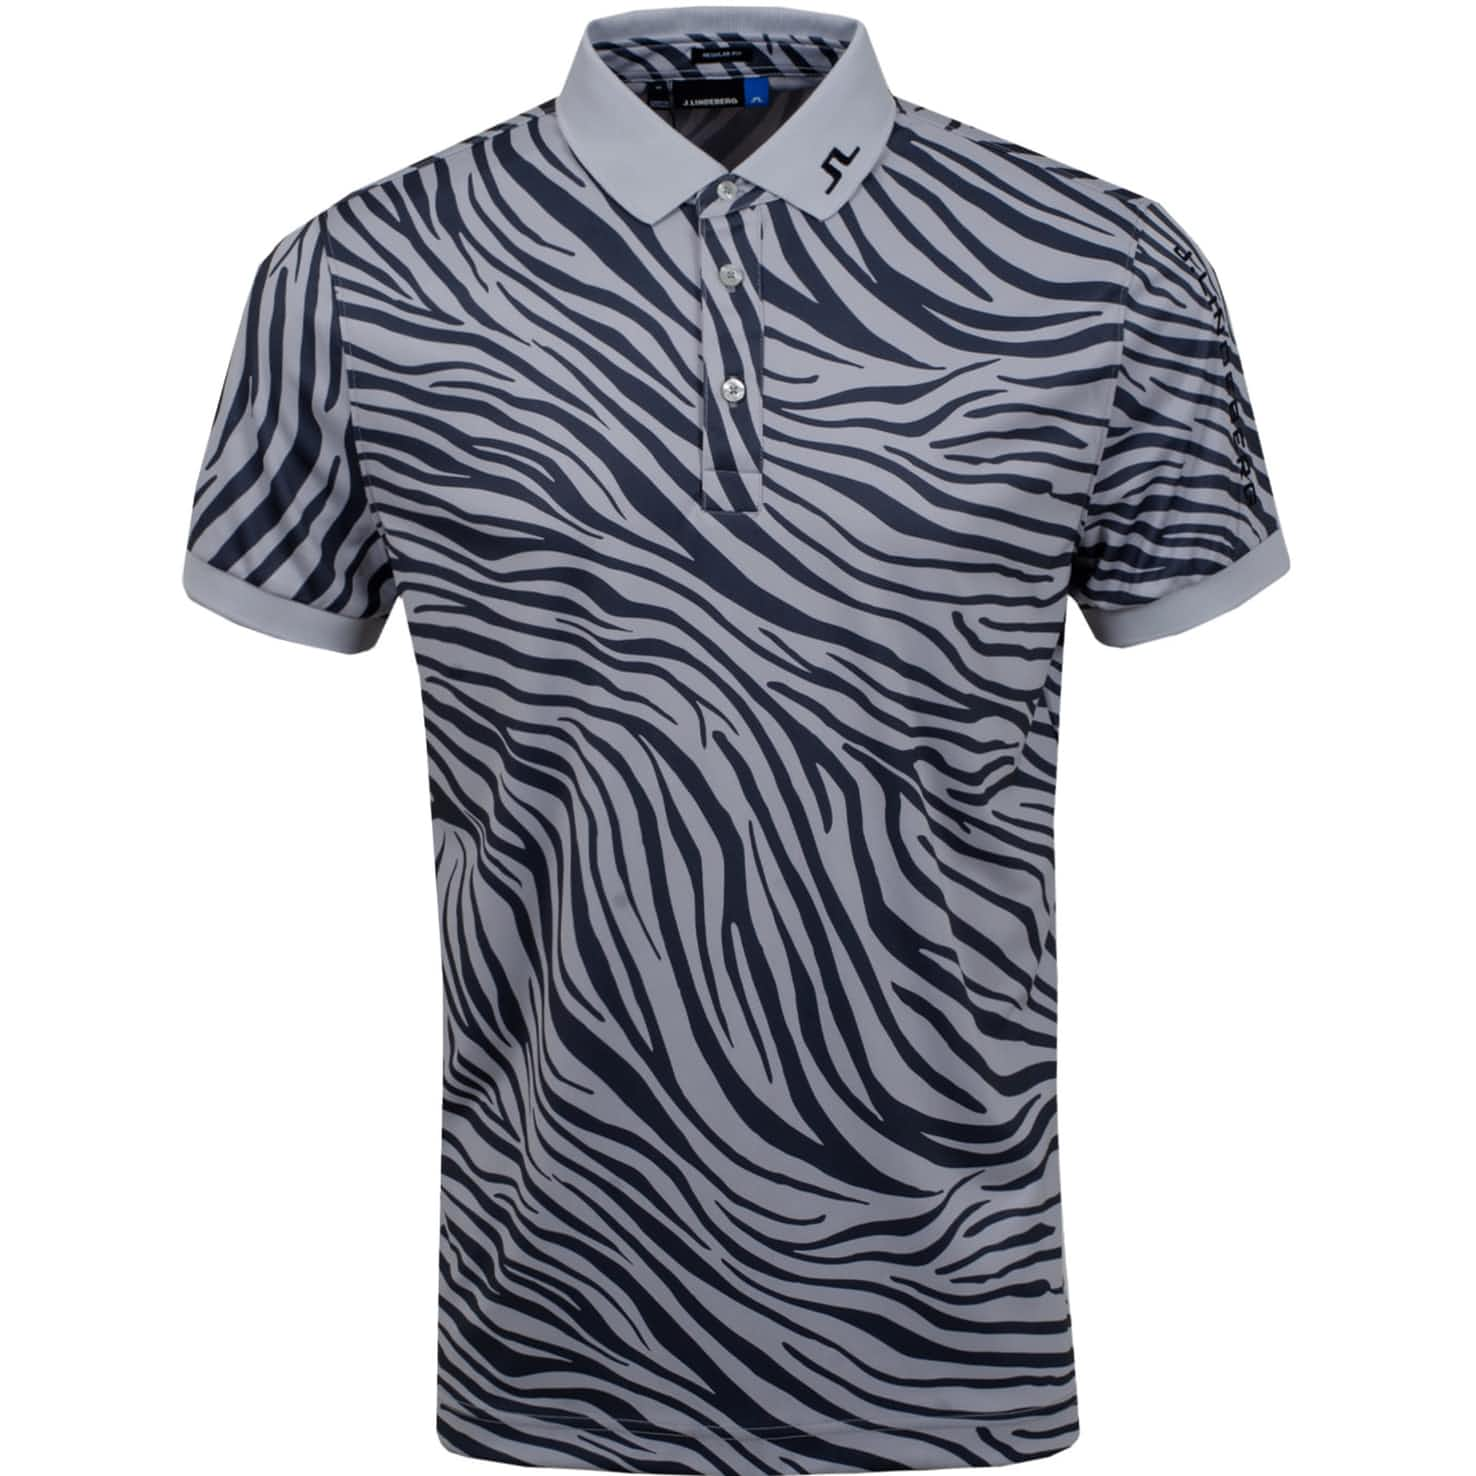 Tour Tech Print Slim Fit TX Jersey Zebra Worl Grey - SS20